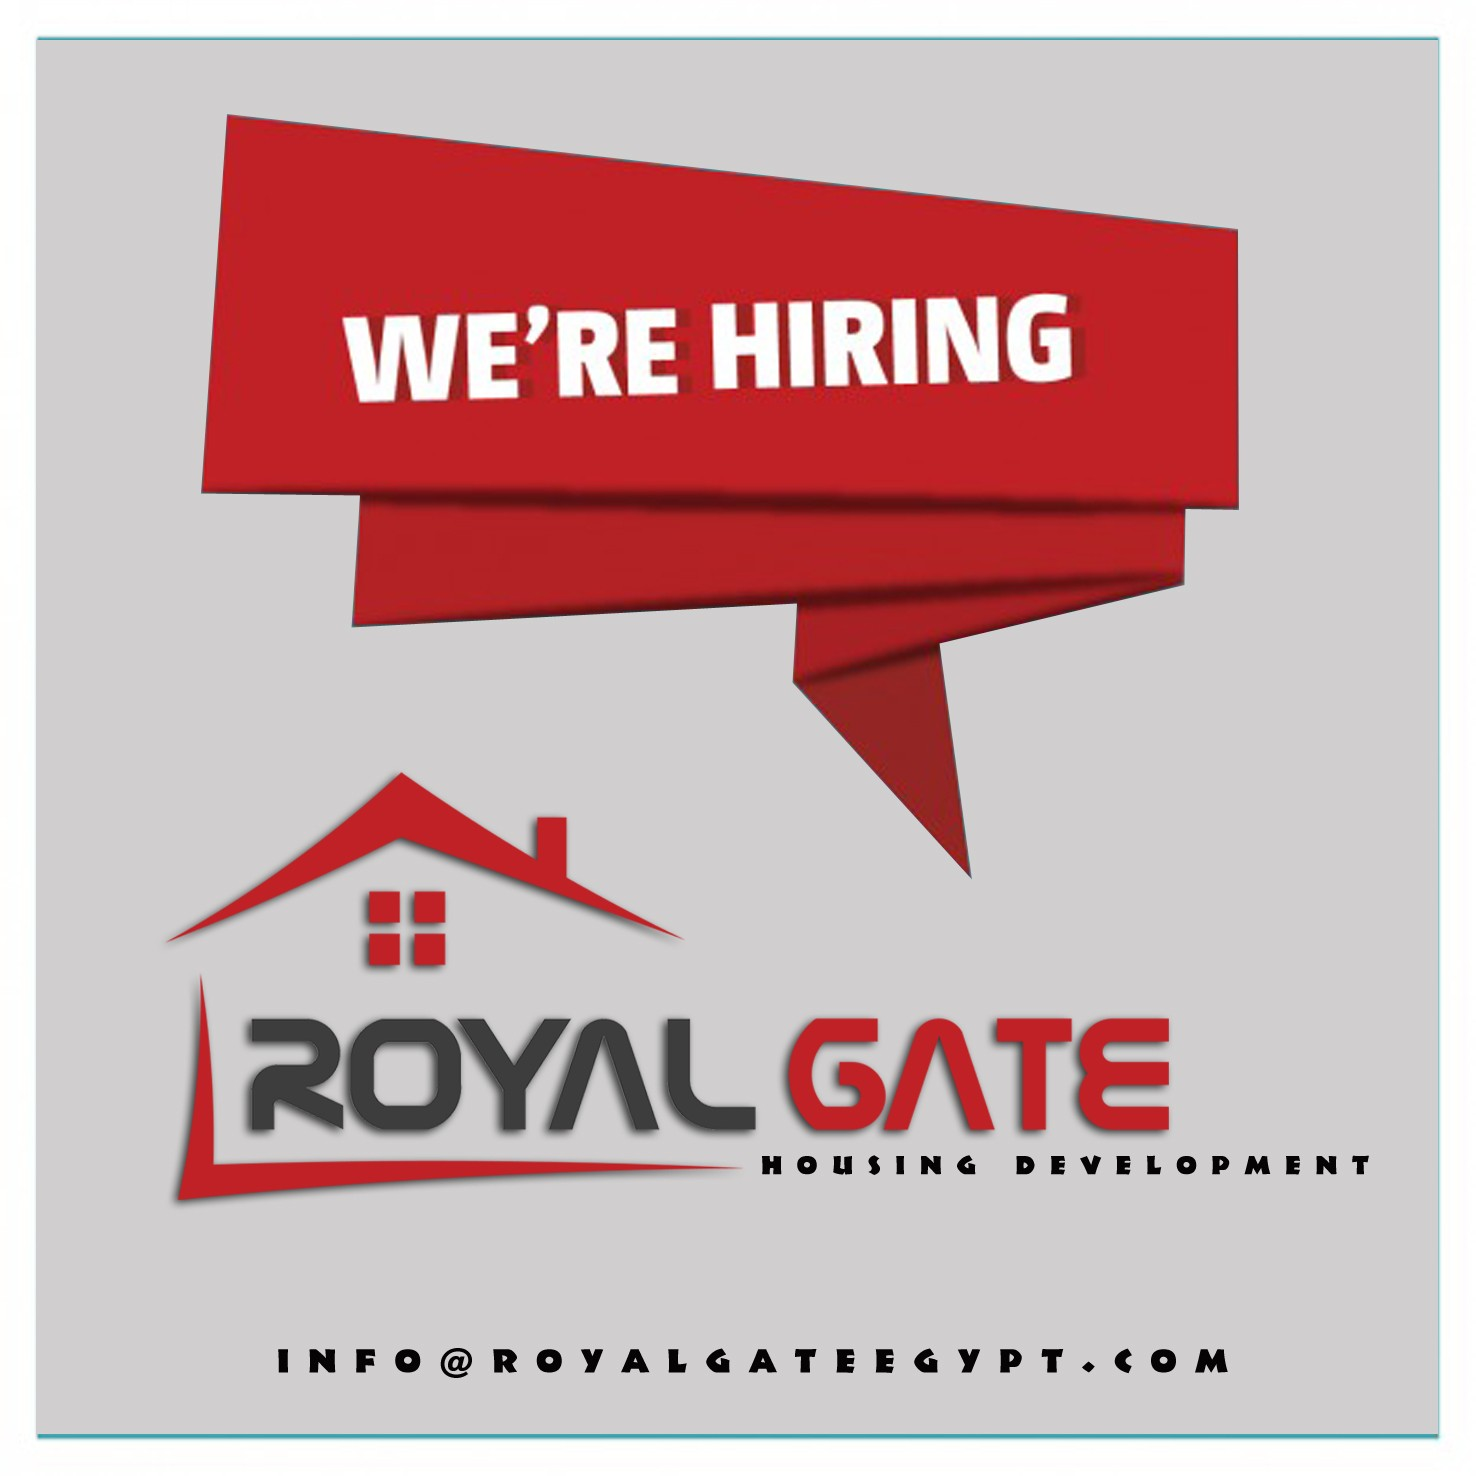 Royal Gate For Housing Development's logo